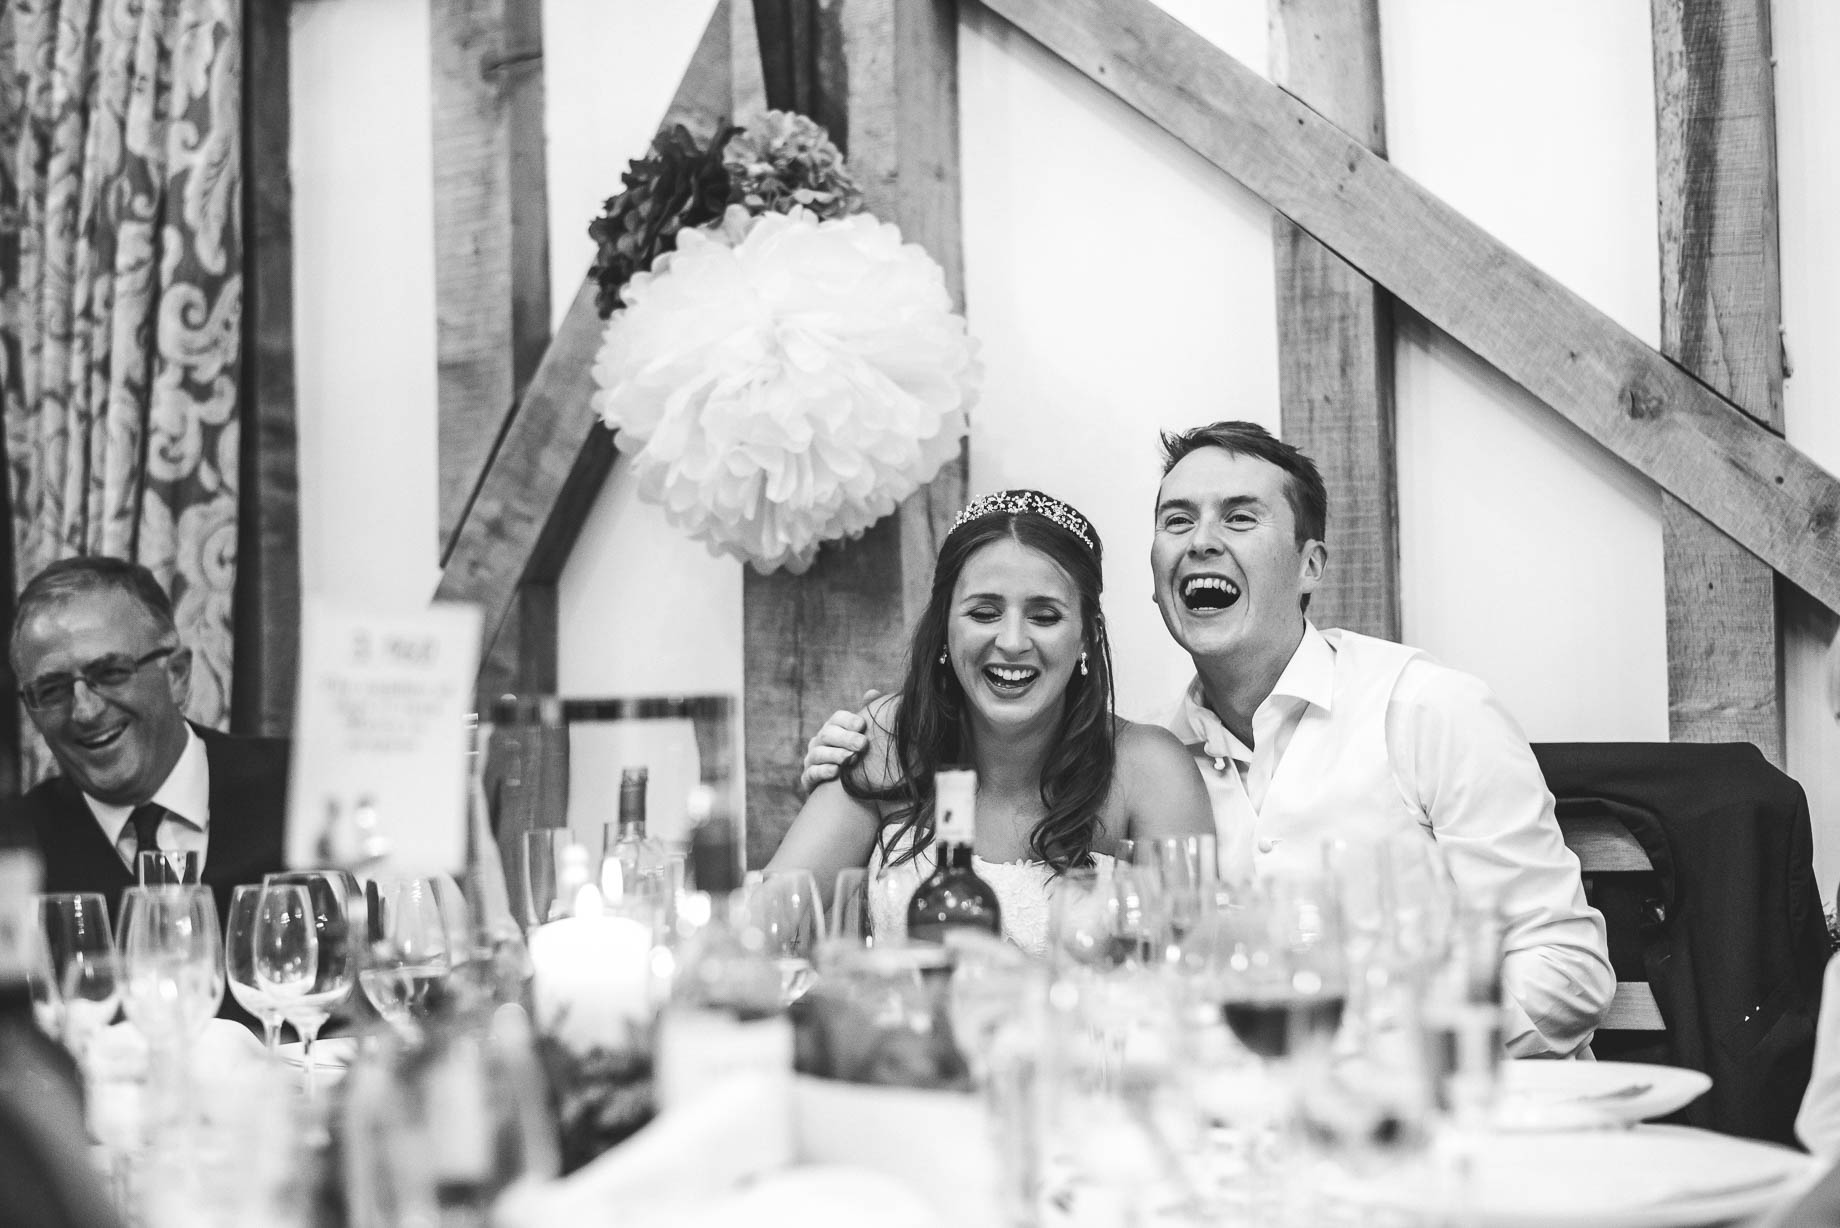 Gate Street Barn wedding photography - Guy Collier - Claire and Andy (167 of 192)